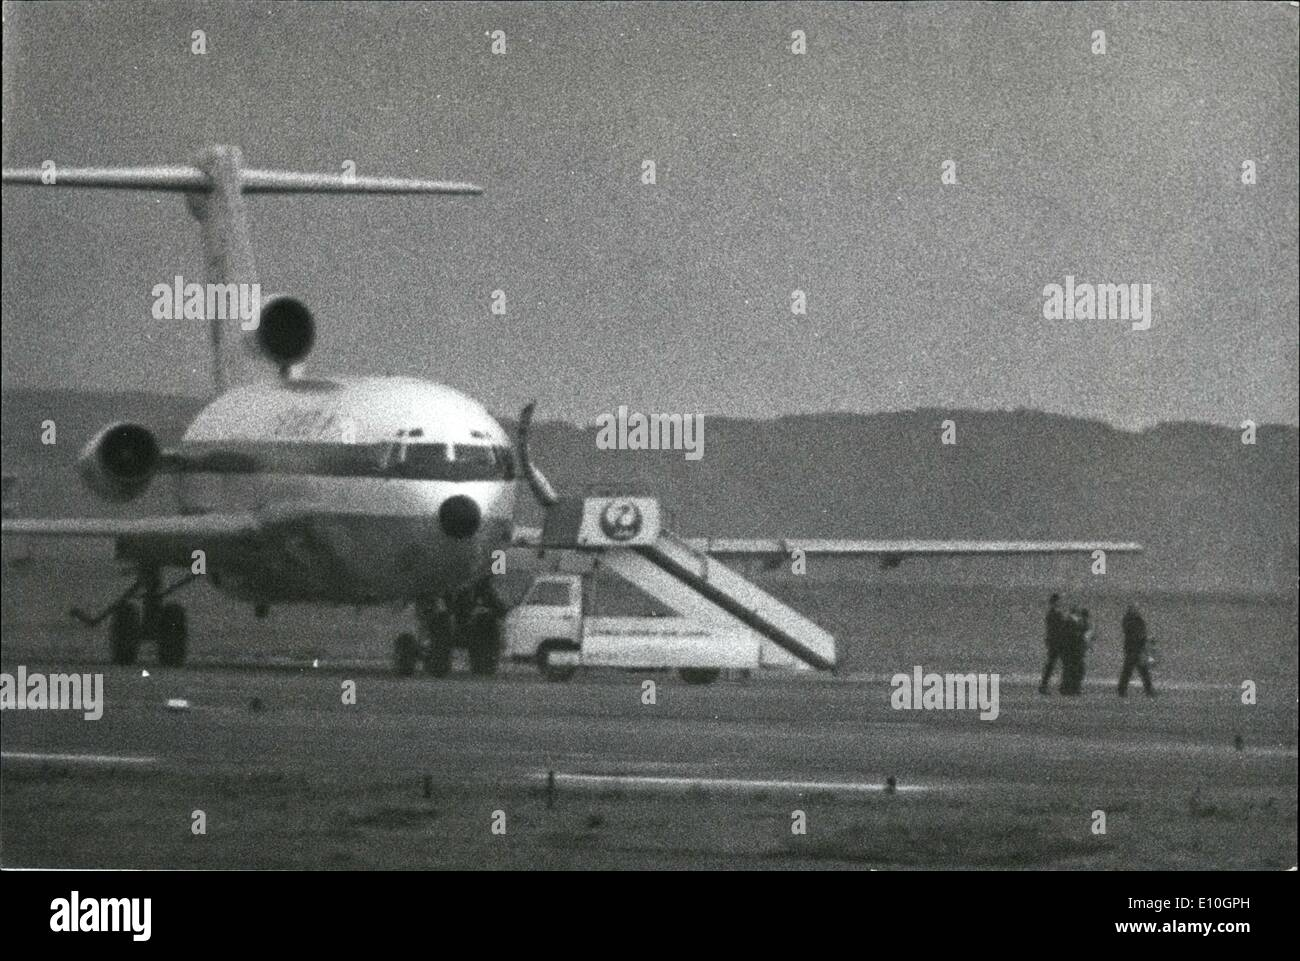 Nov. 11, 1972 - Japanese Hijacker in action: Tatsuji Nakaoka (47) keeps his loaded pistol on the three crewmen as they walk in single file with their hands tied from the Japan Air Lines 747 he had hijacked, to a Boeing DC-8 where he was captured by Tokyo police hidden in the aircraft. Nakoaka made the mistake of hijacking the 747 whose range could not fly him to Cuba via Vancouver and Mexico with 2 million U.S dollars ransom - Stock Image